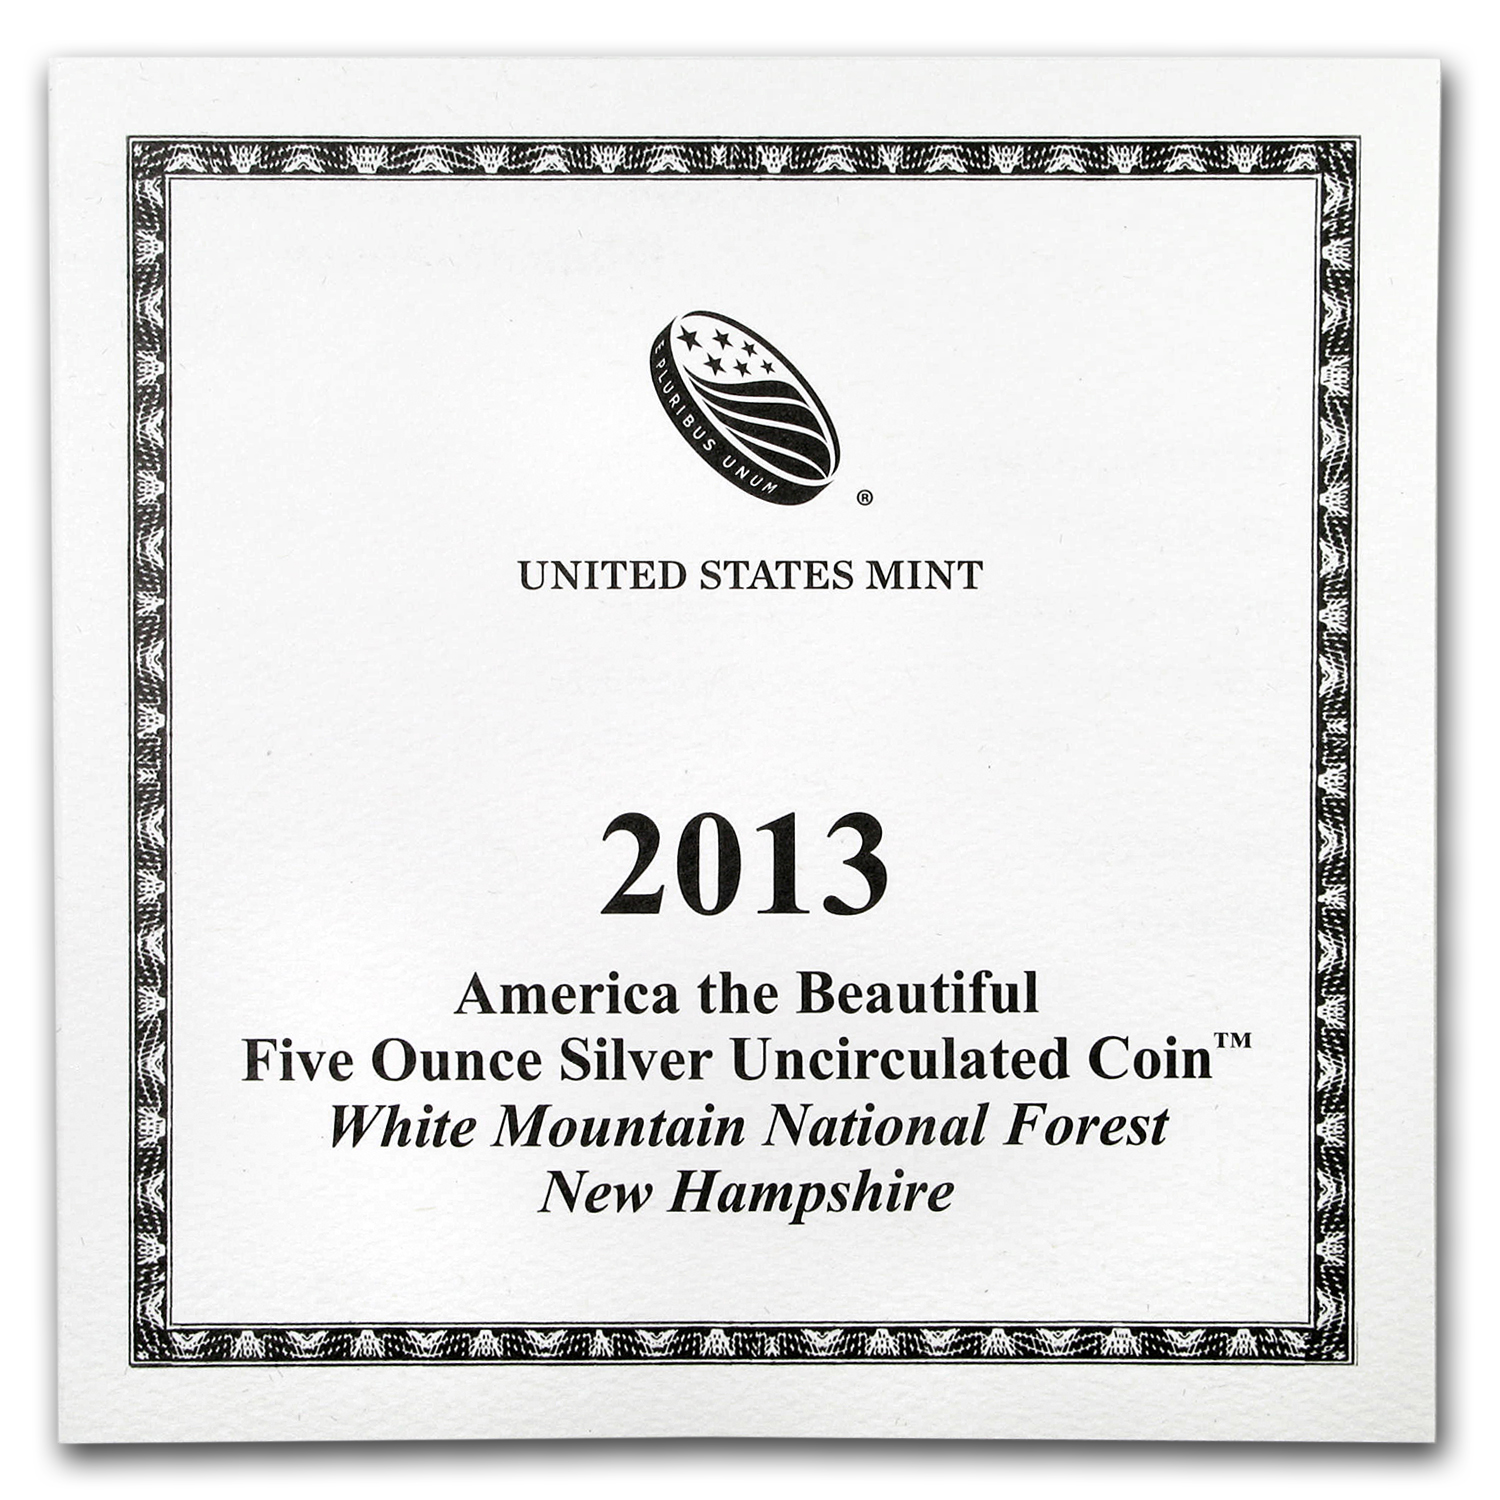 OGP Box & COA - 2013 U.S. Mint 5 oz Silver ATB Coin (White Mtn.)